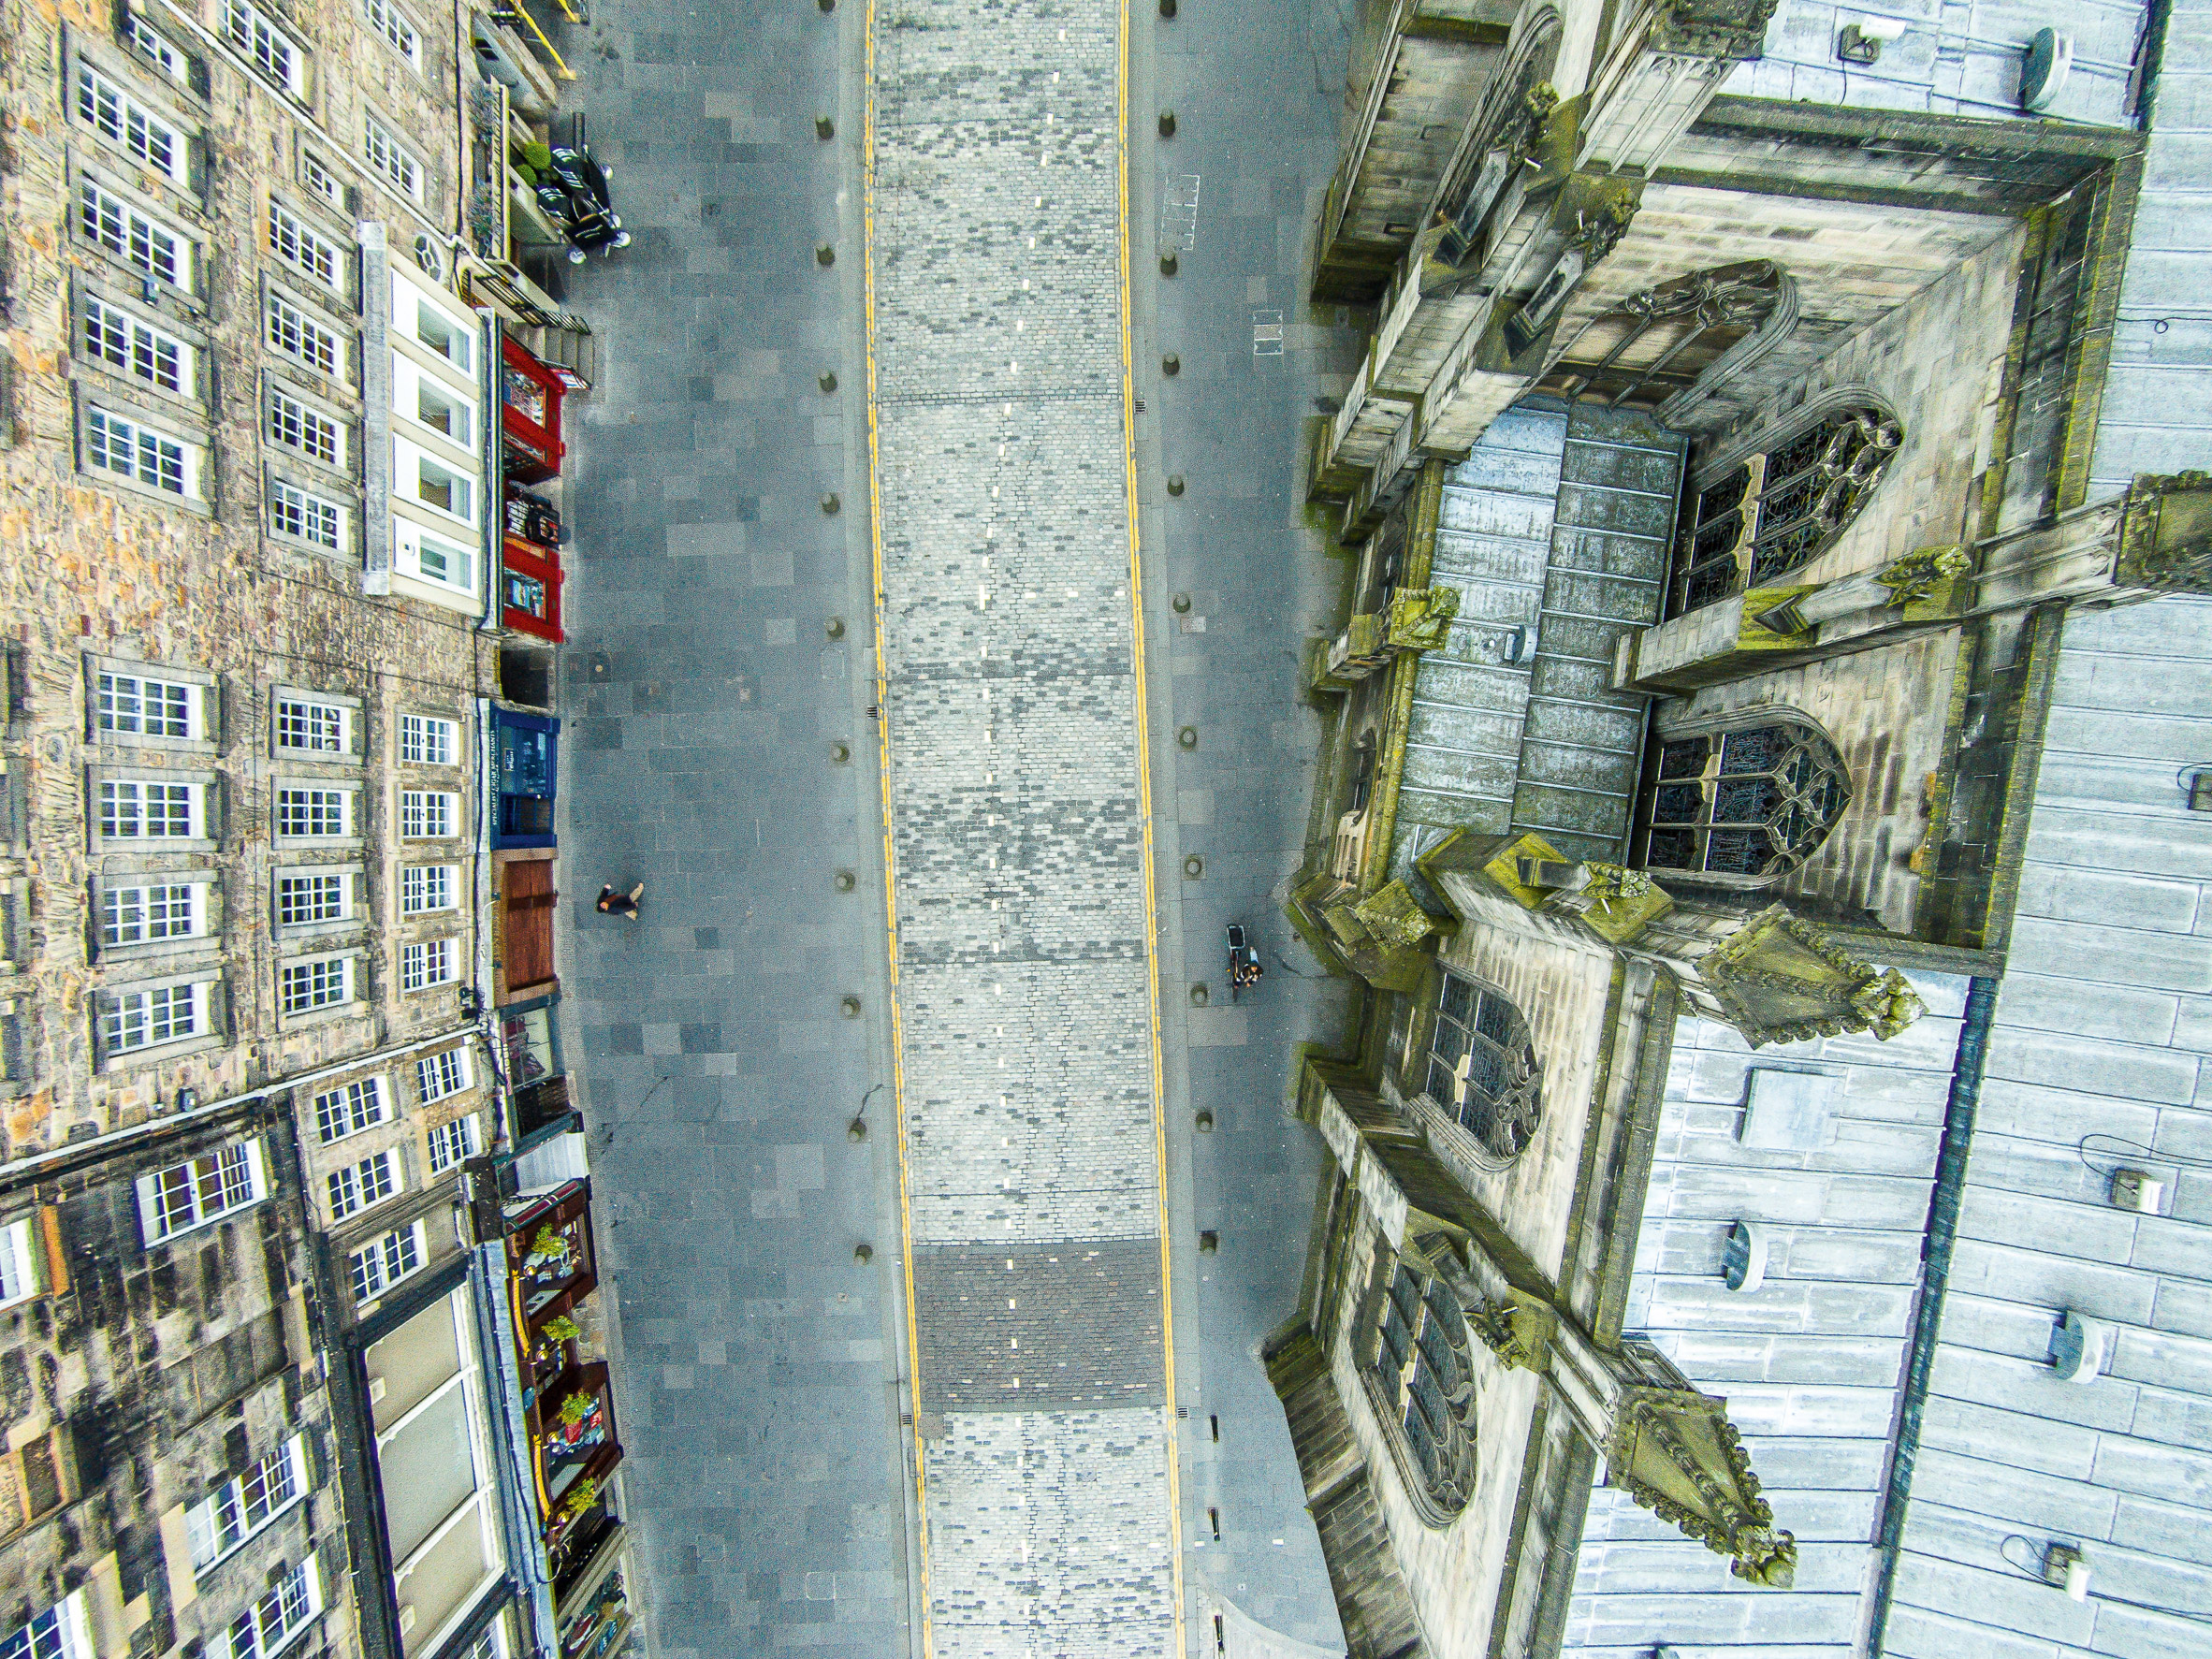 Francesco Gernones Photographs Show The Streets Of Edinburgh From A Drones Eye View